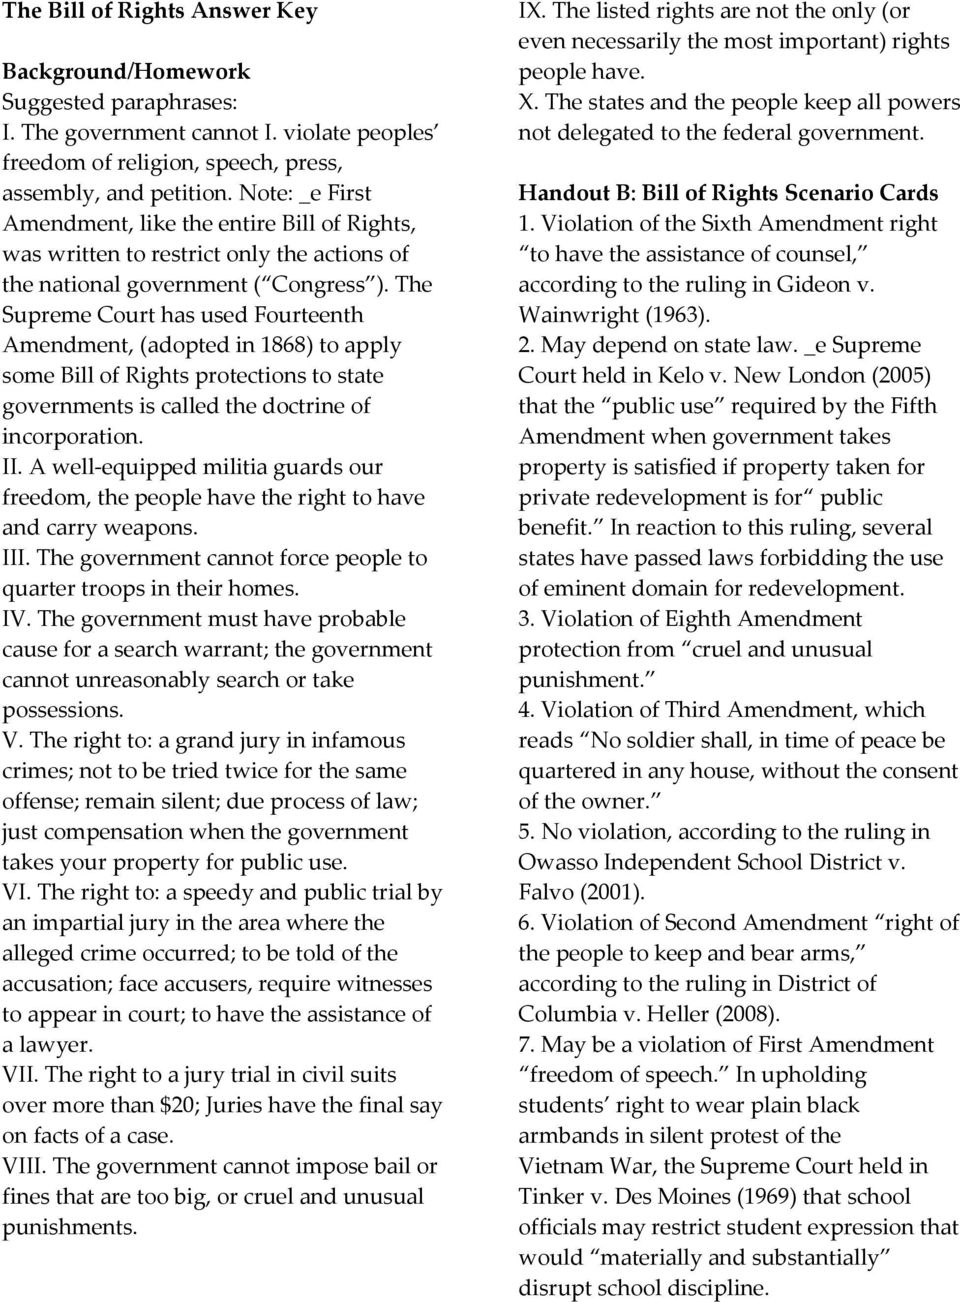 The Bill Of Rights Lesson Three Critical Engagement Question